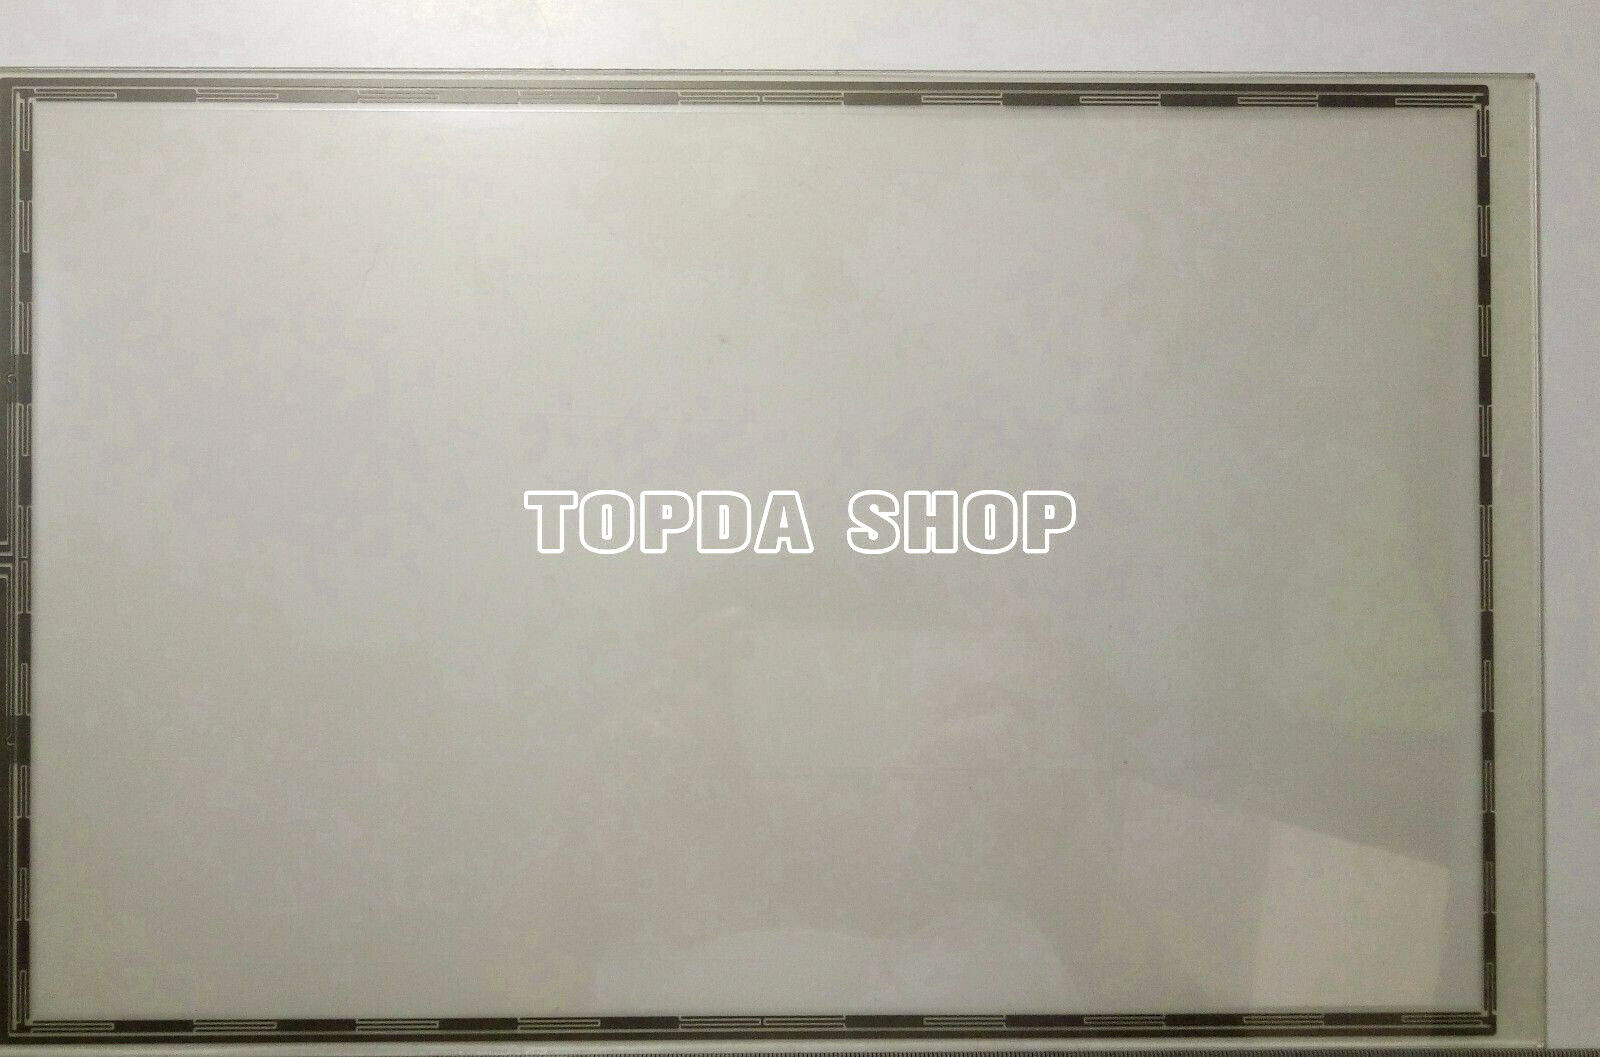 1pc ELO E971950,SCN-Z5-FZT15.0-SY1-0H1-R touch screen panel